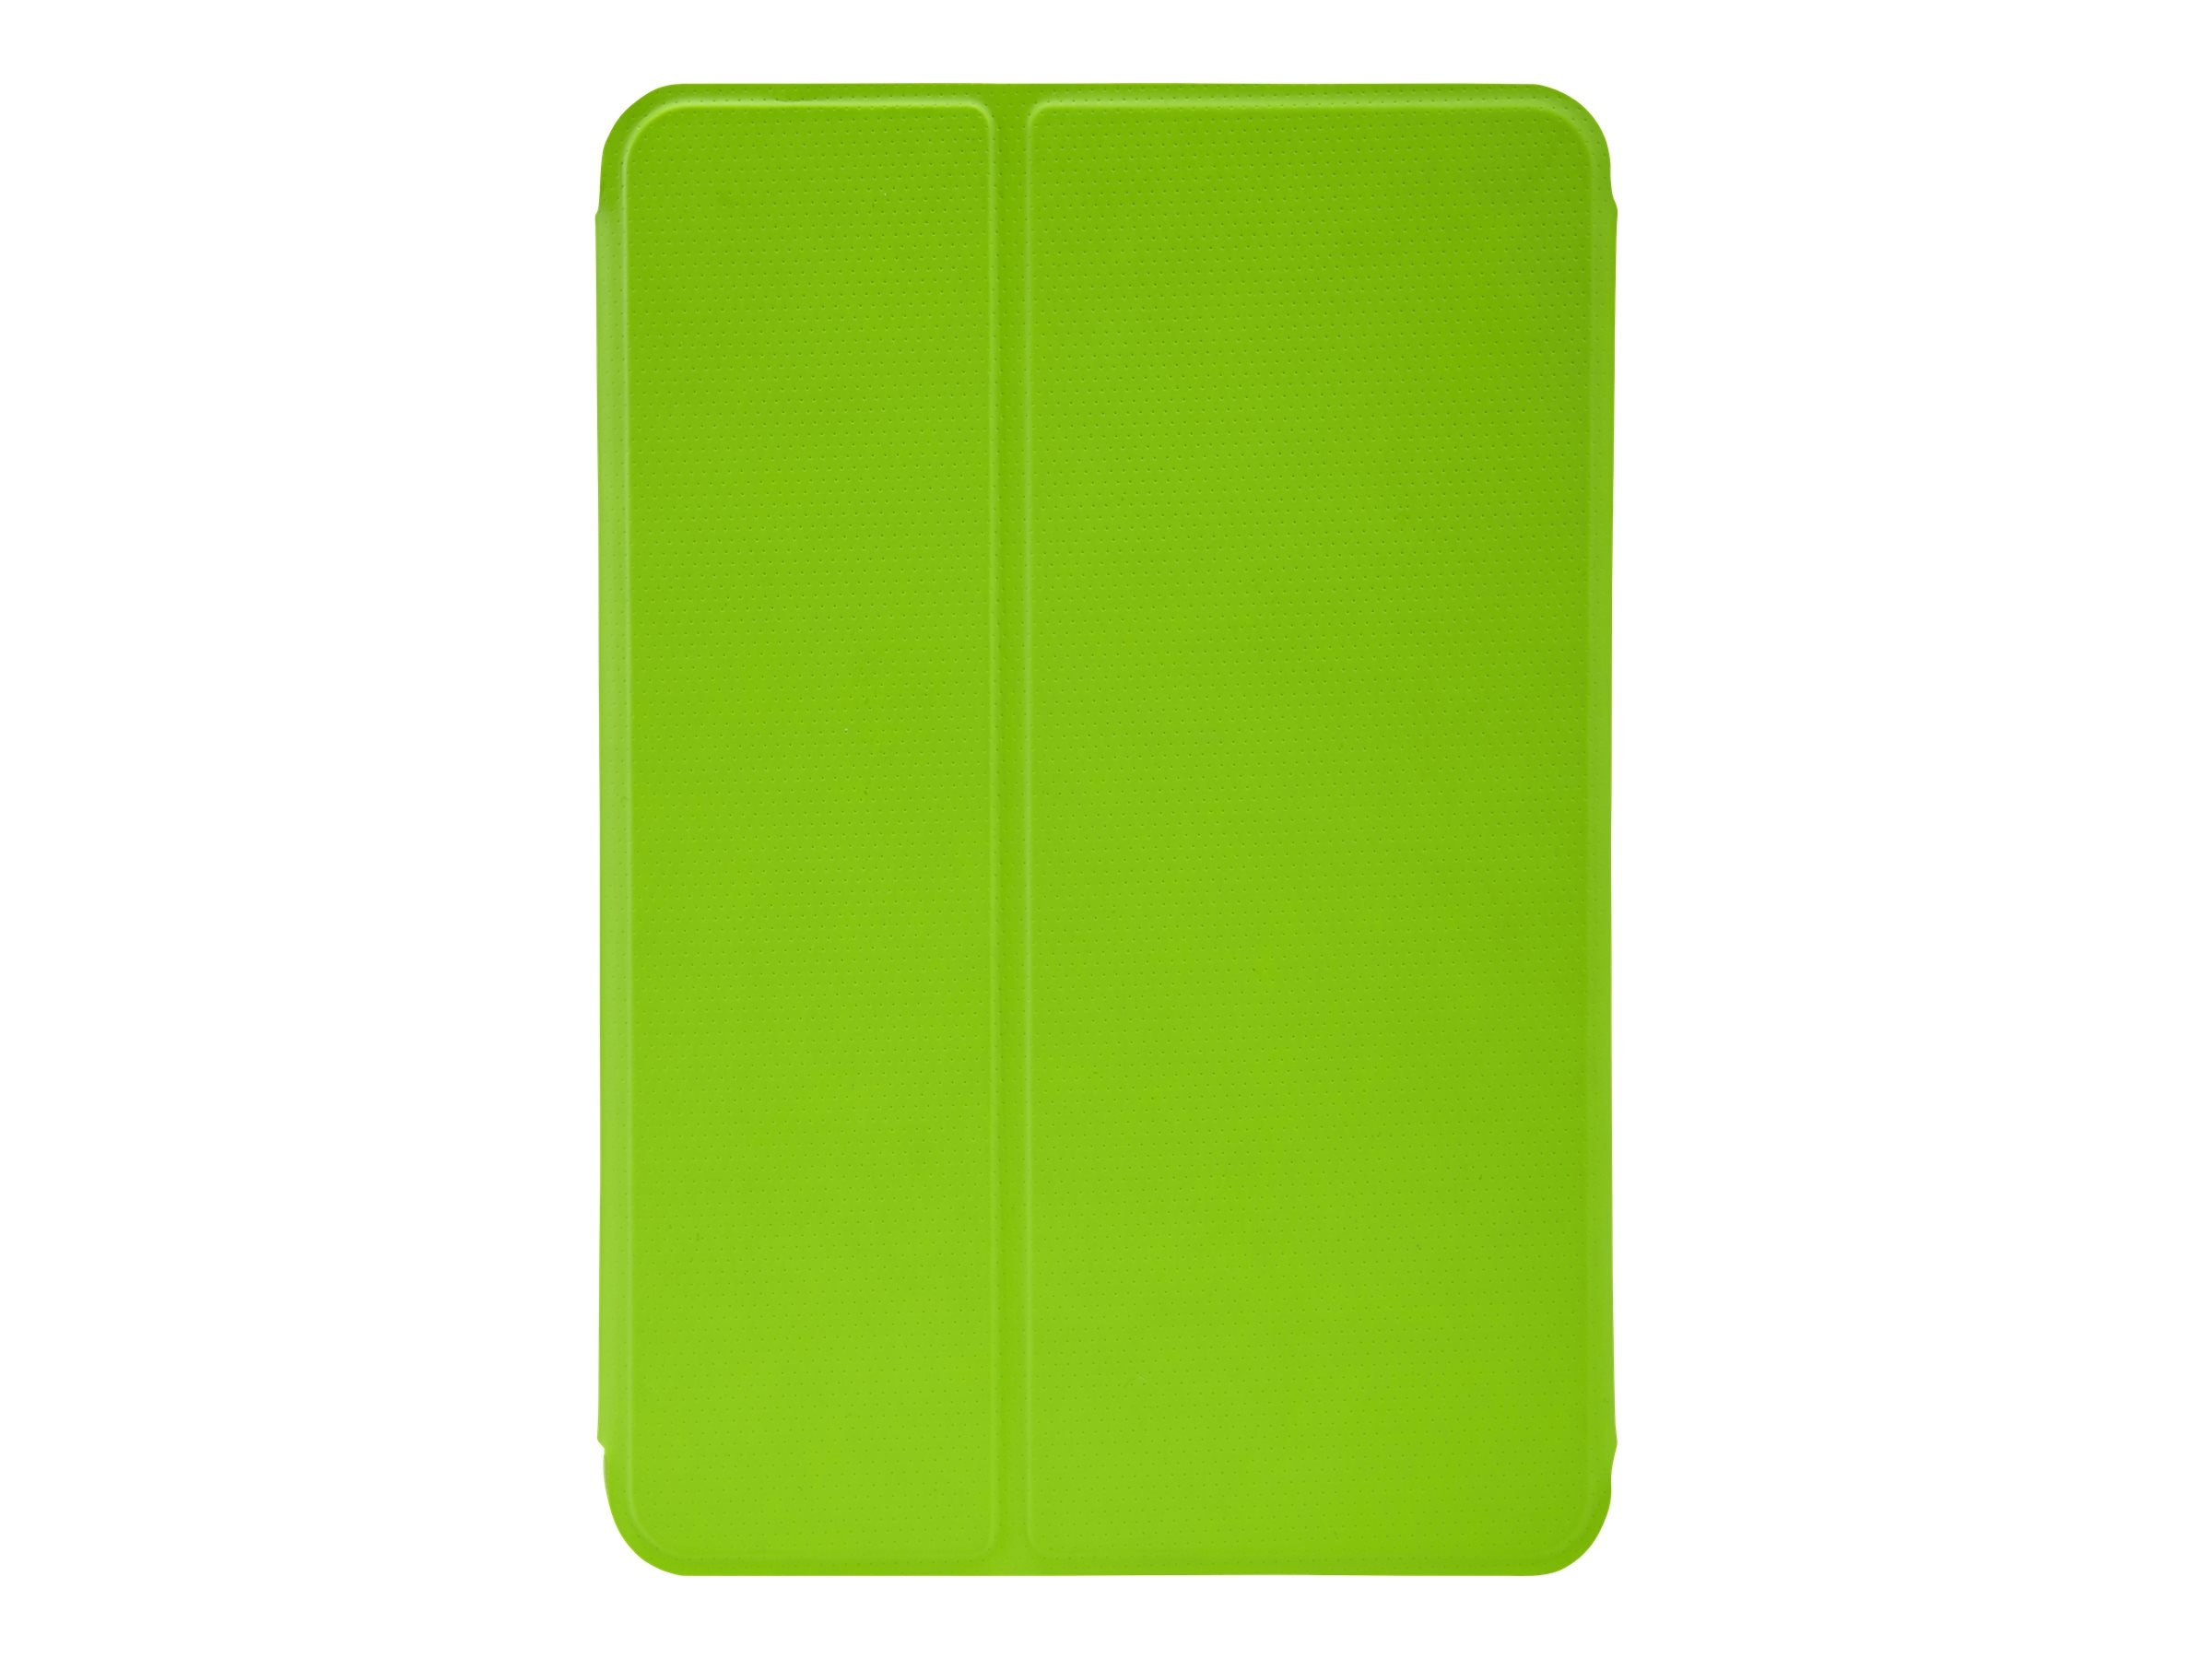 Case Logic SnapView 2.0 Case for iPad mini 1 2 3, Lime, CSIE-2140LIMEGREEN